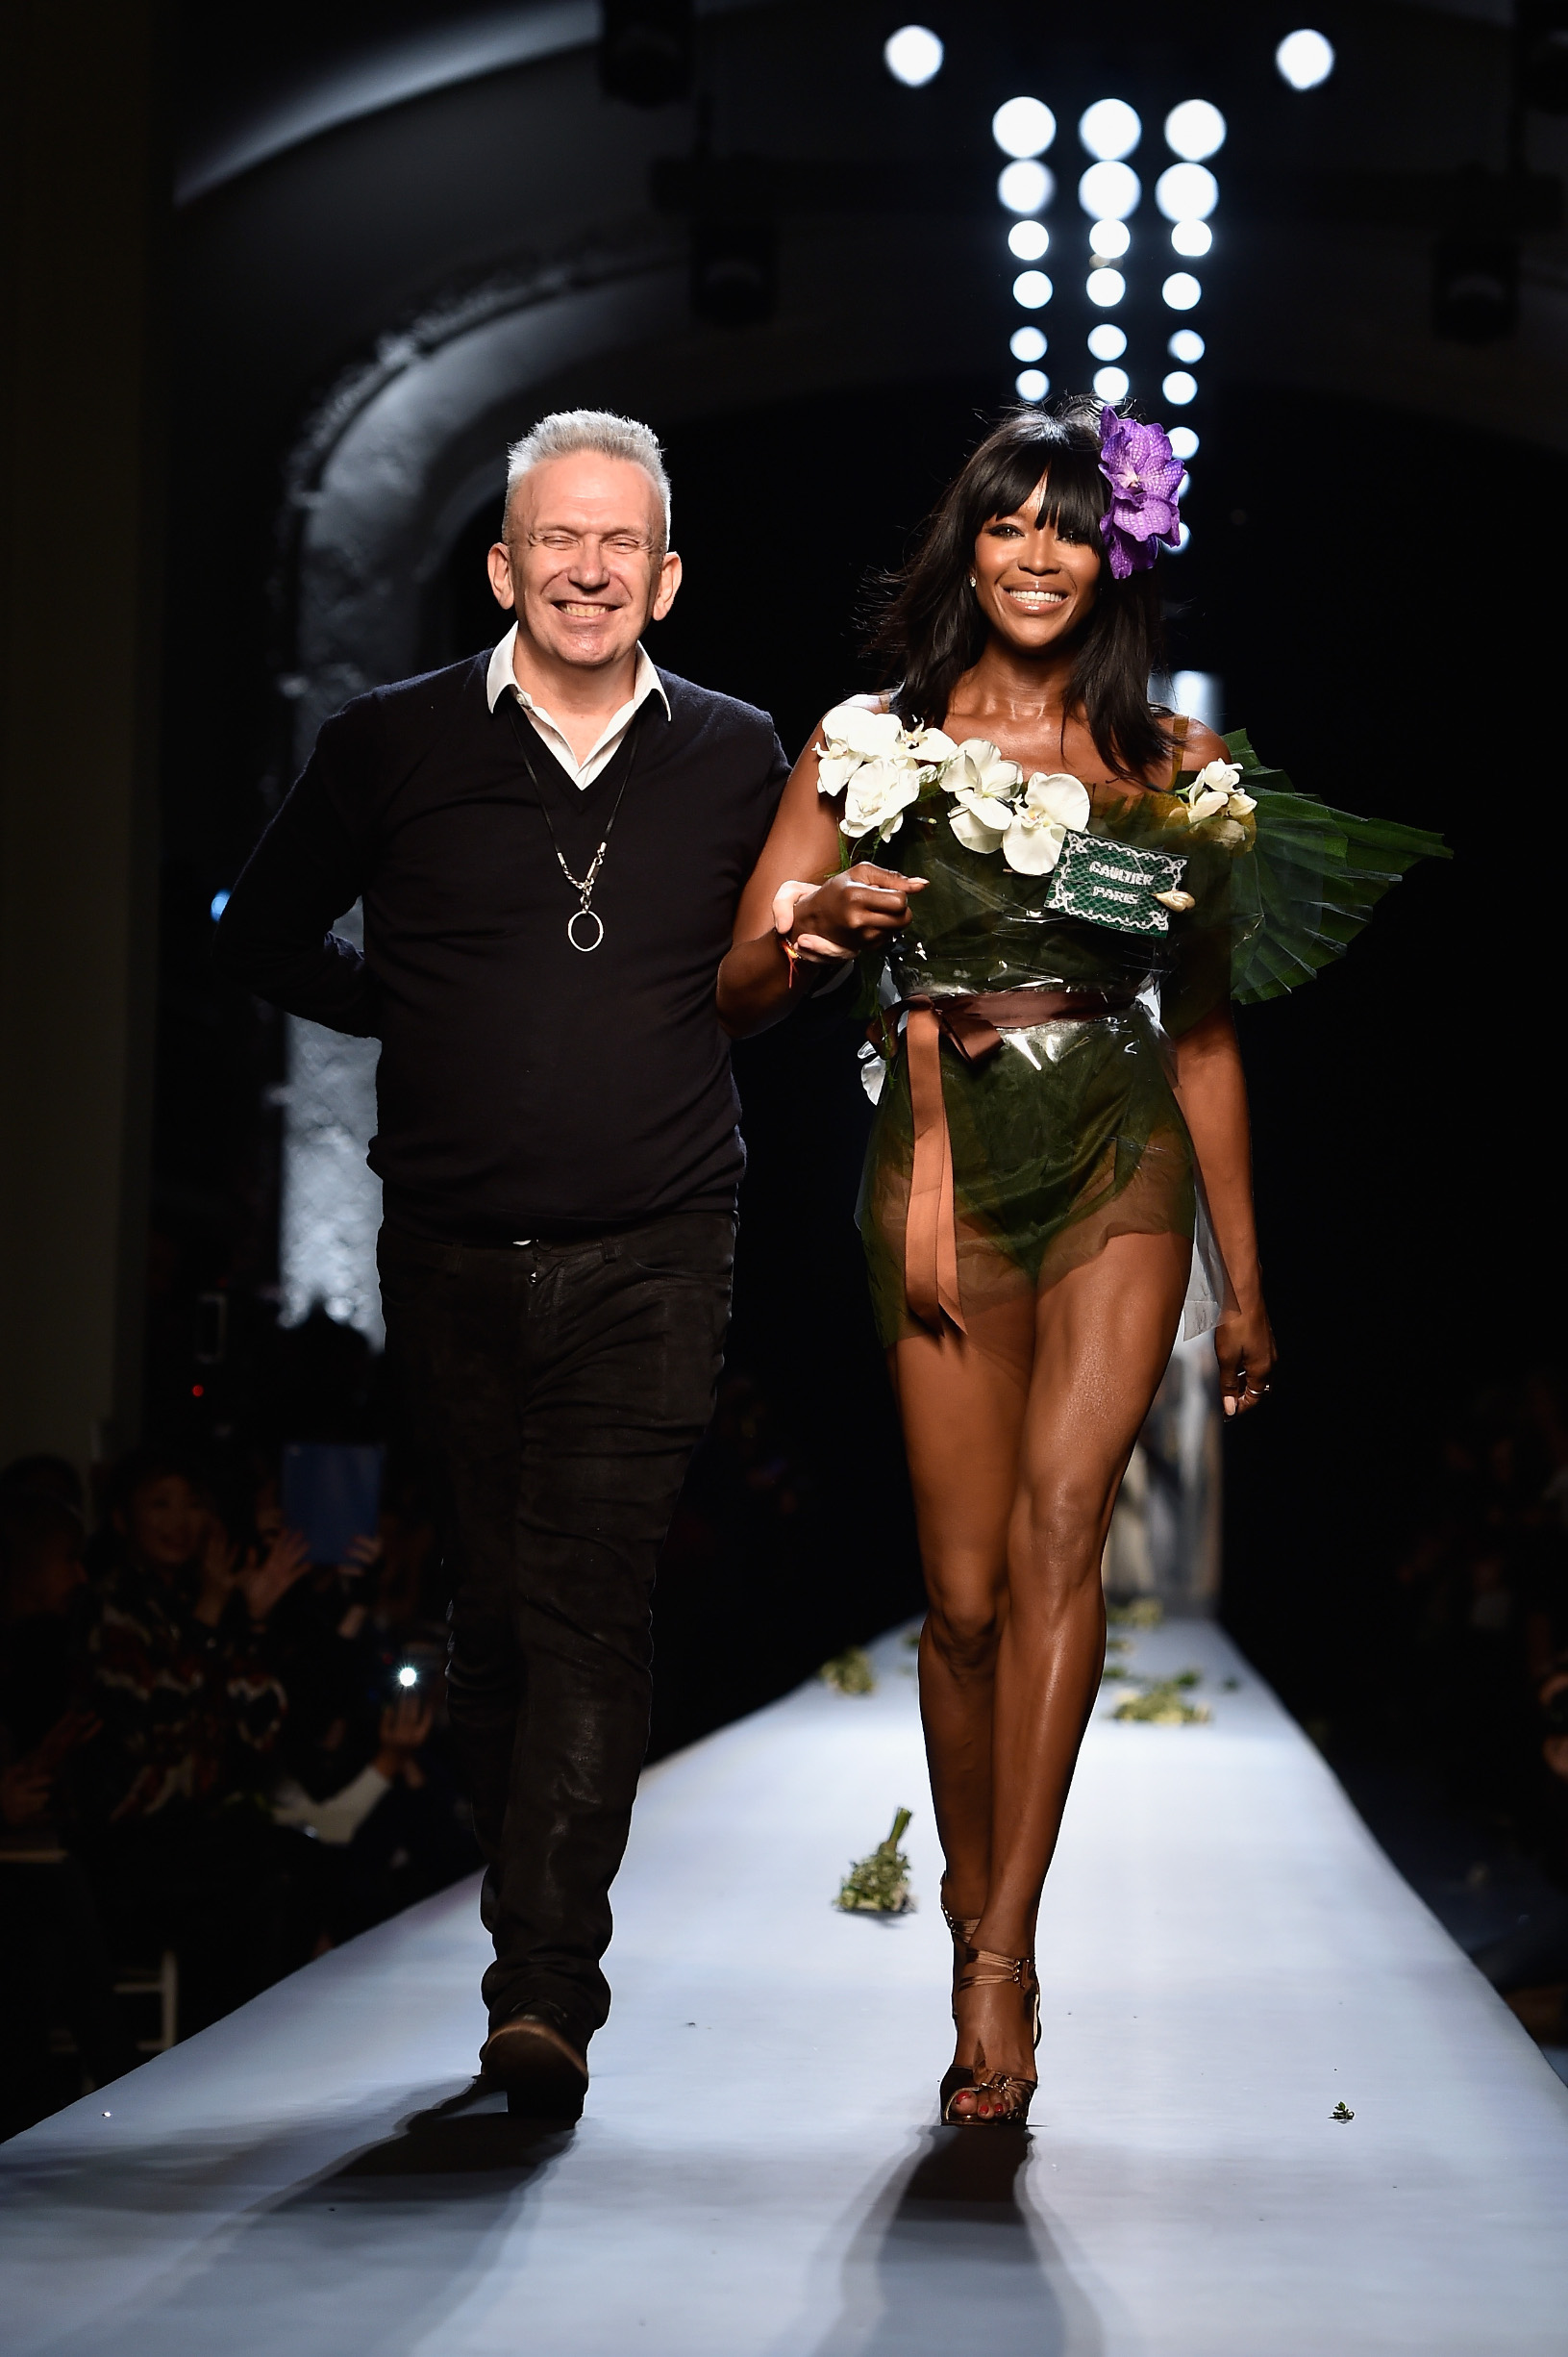 PARIS, FRANCE - JANUARY 28:  (L-R) Fashion designer Jean Paul Gaultier and model Naomi Campbell walk the runway at the end of the Jean Paul Gaultier show as part of Paris Fashion Week Haute Couture Spring/Summer 2015 on January 28, 2015 in Paris, France.  (Photo by Pascal Le Segretain/Getty Images)